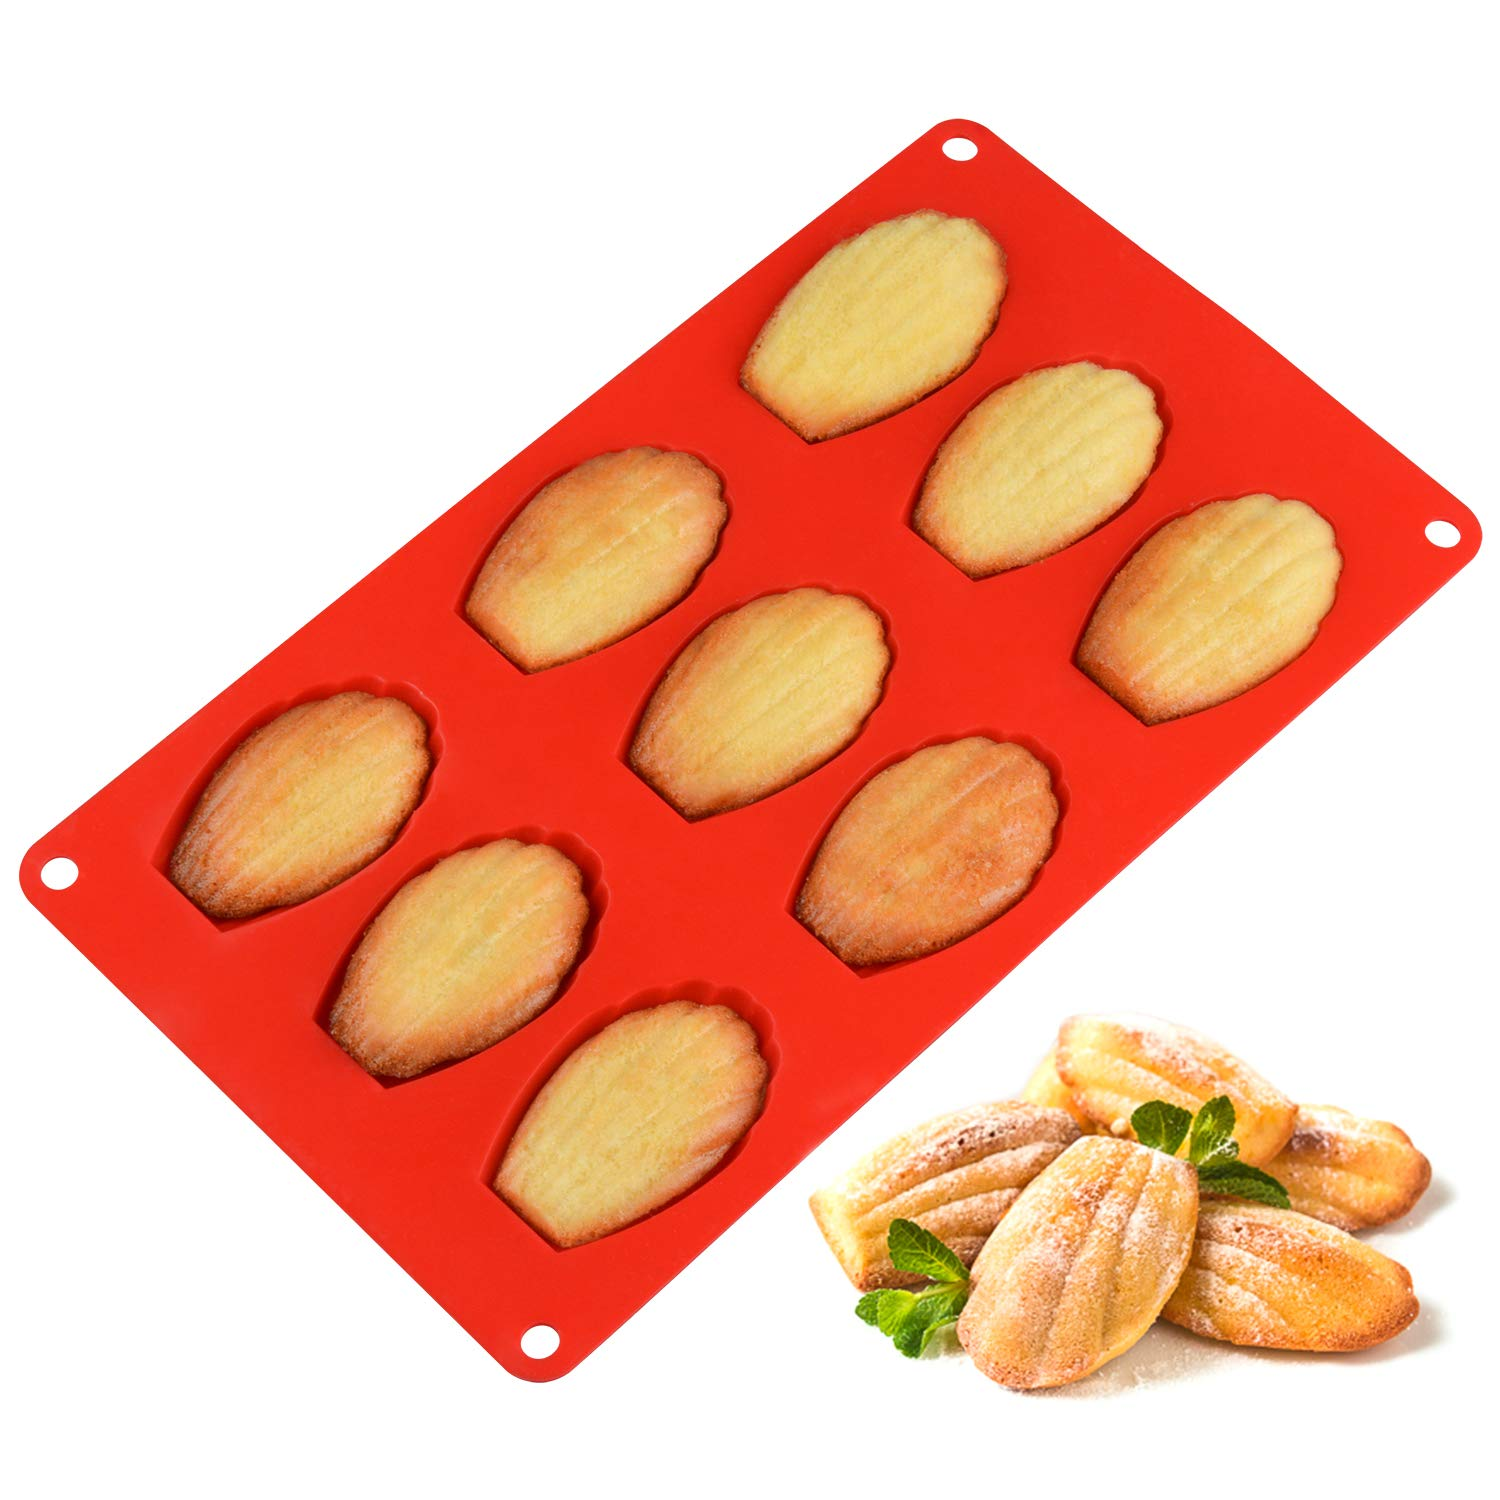 Silicone Madeleine Pans - 9 Cups Madeleine Mold for Small Cake, Chocolate, Cookies Pack of 2 by CAKETIME (Image #2)